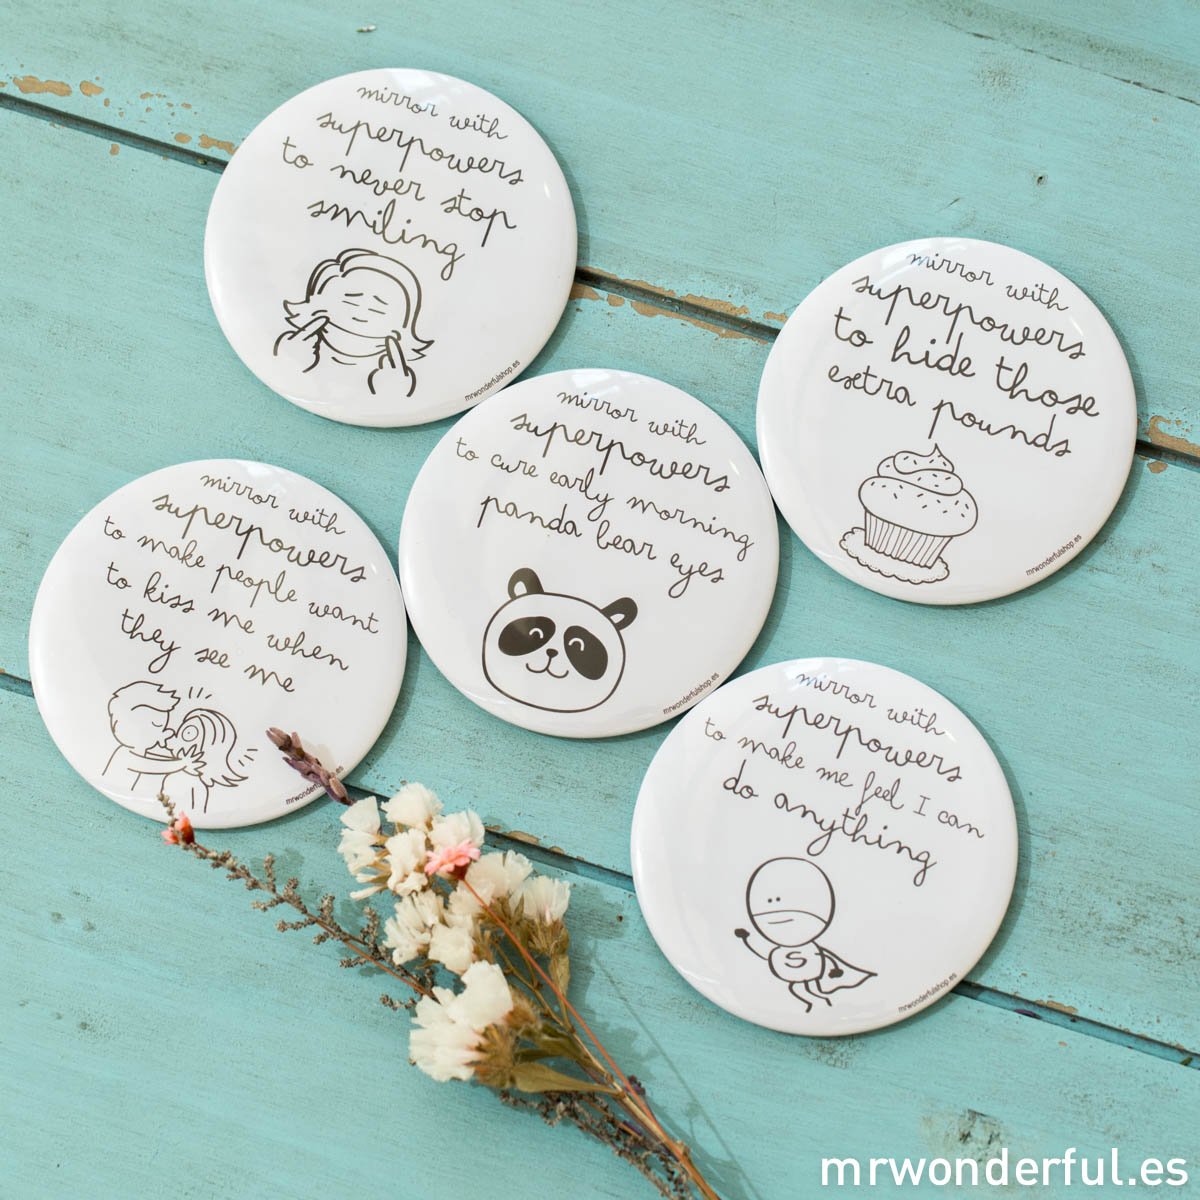 mrwonderful_ESP045_pack-05-mirrors-with-superpowers-for-celebration-2